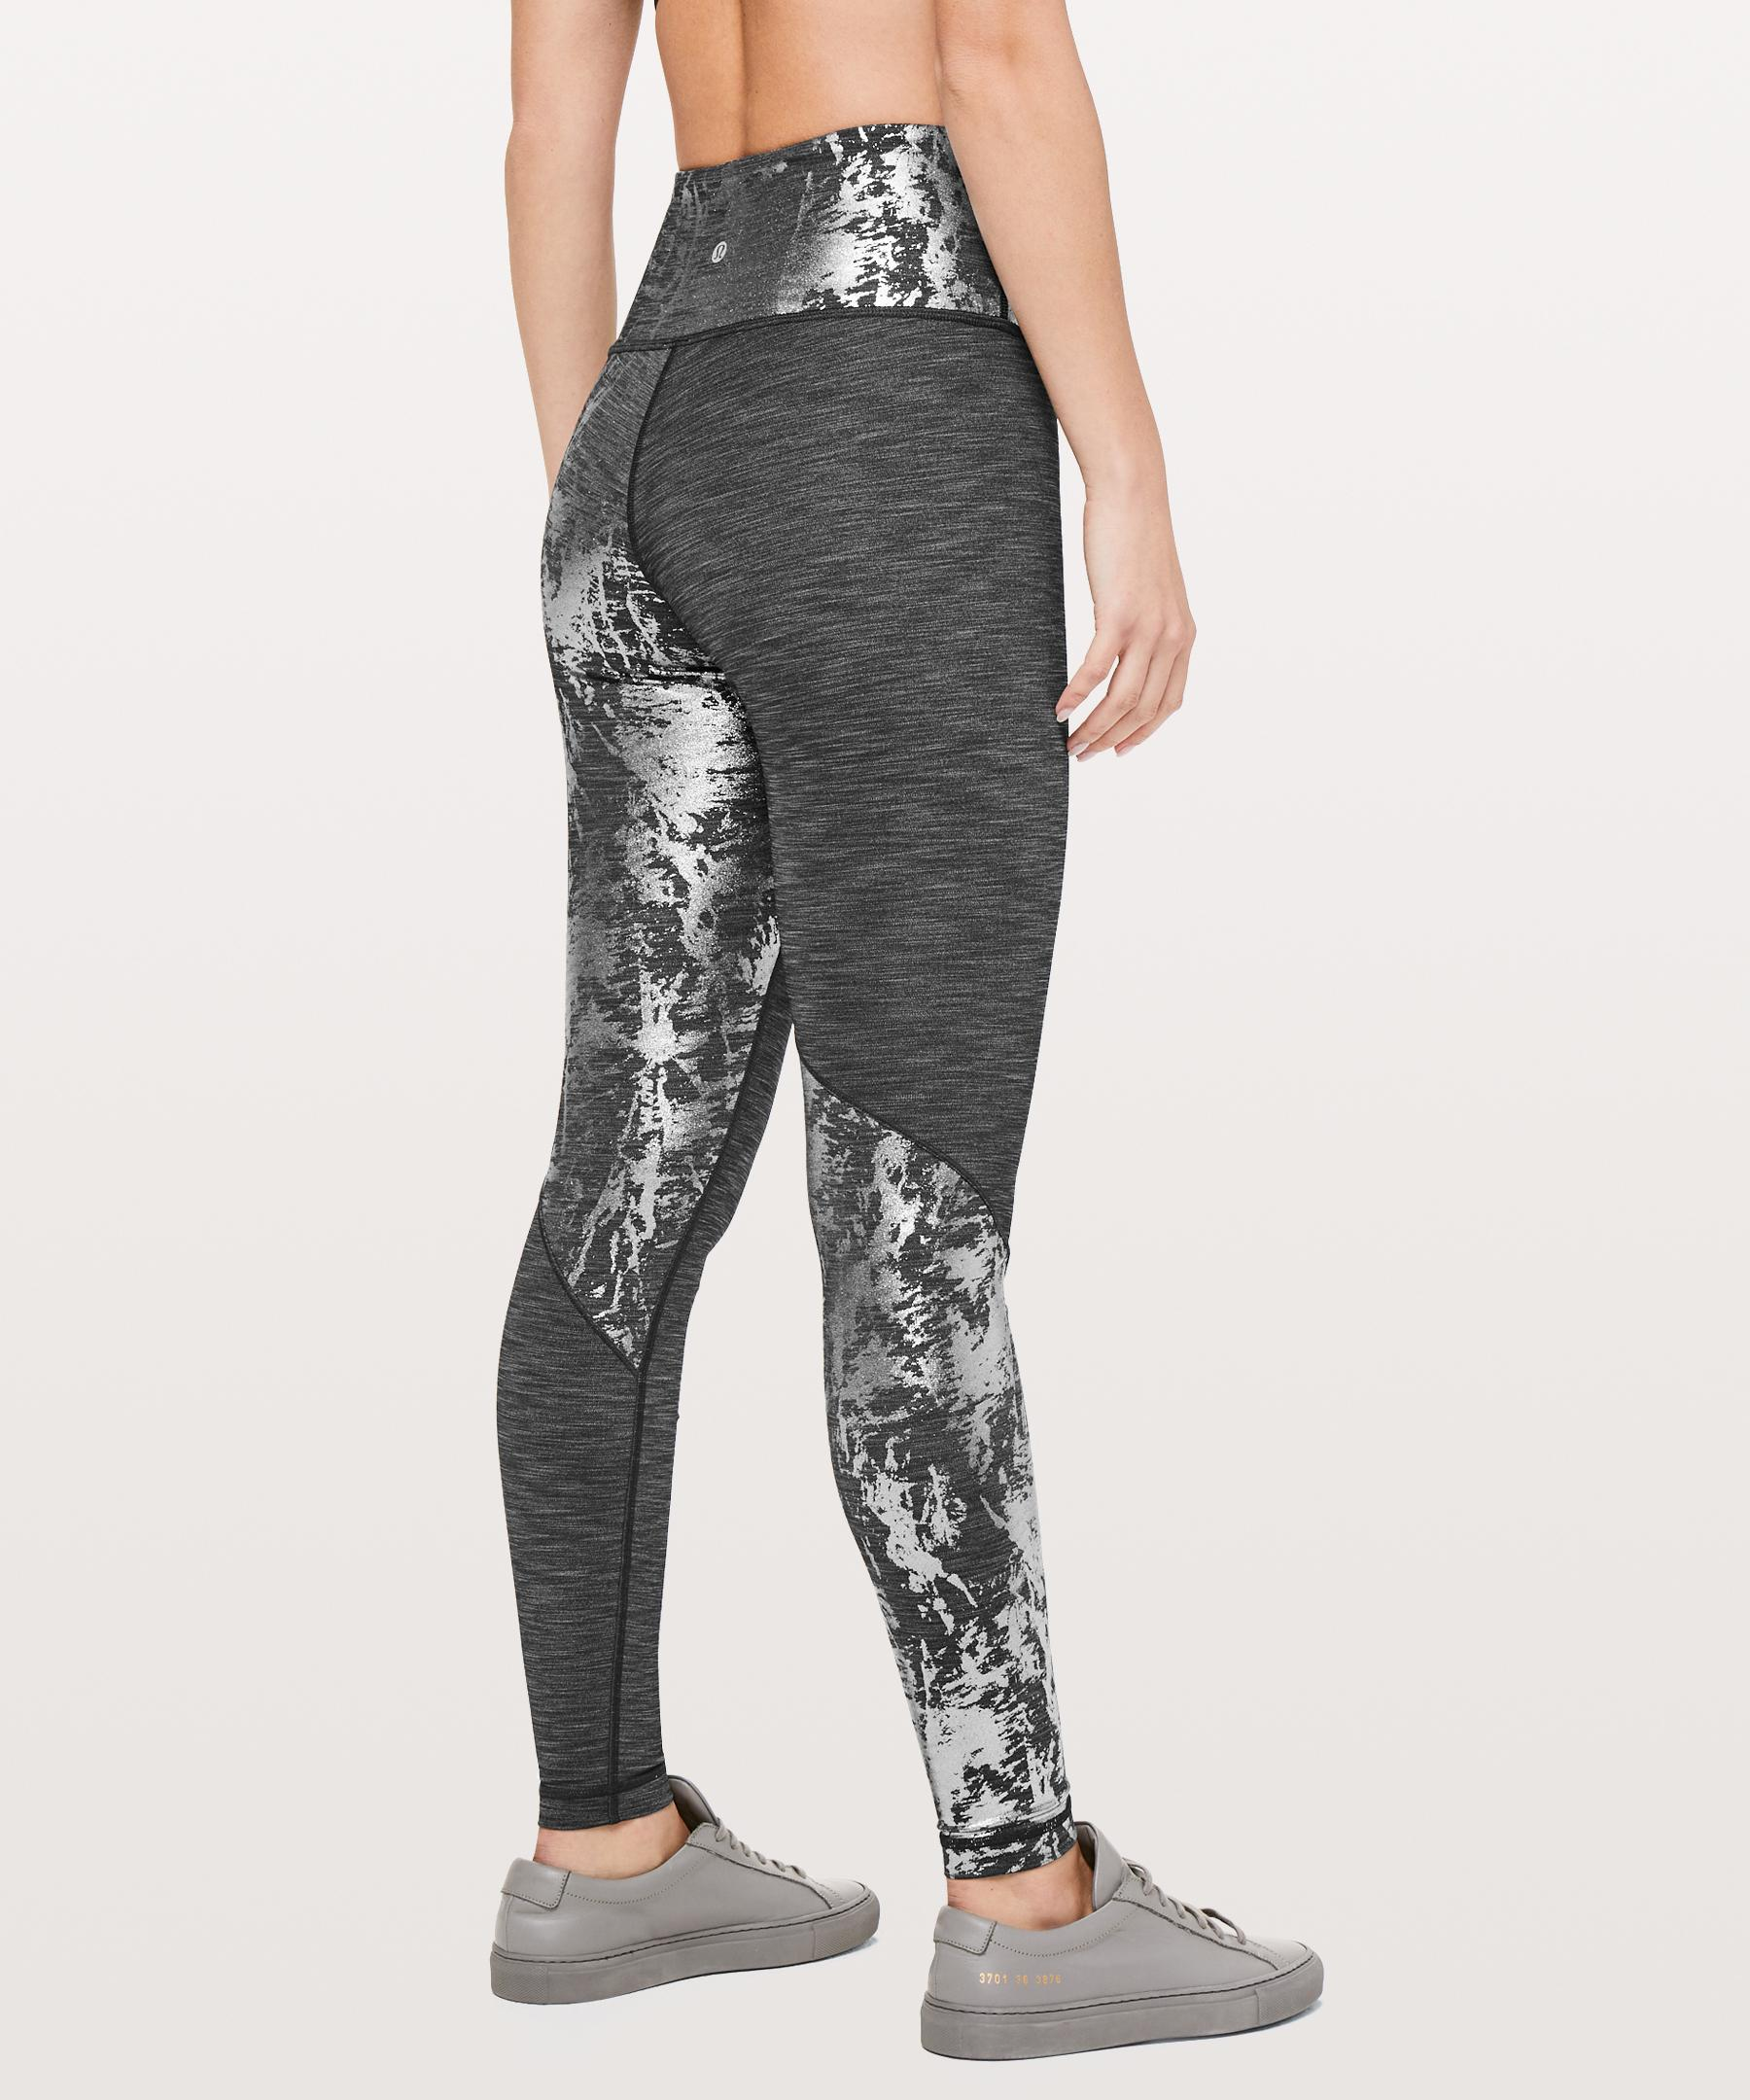 bd11a1dbcf23a2 lululemon athletica Wunder Under High-rise Tight *foil 28